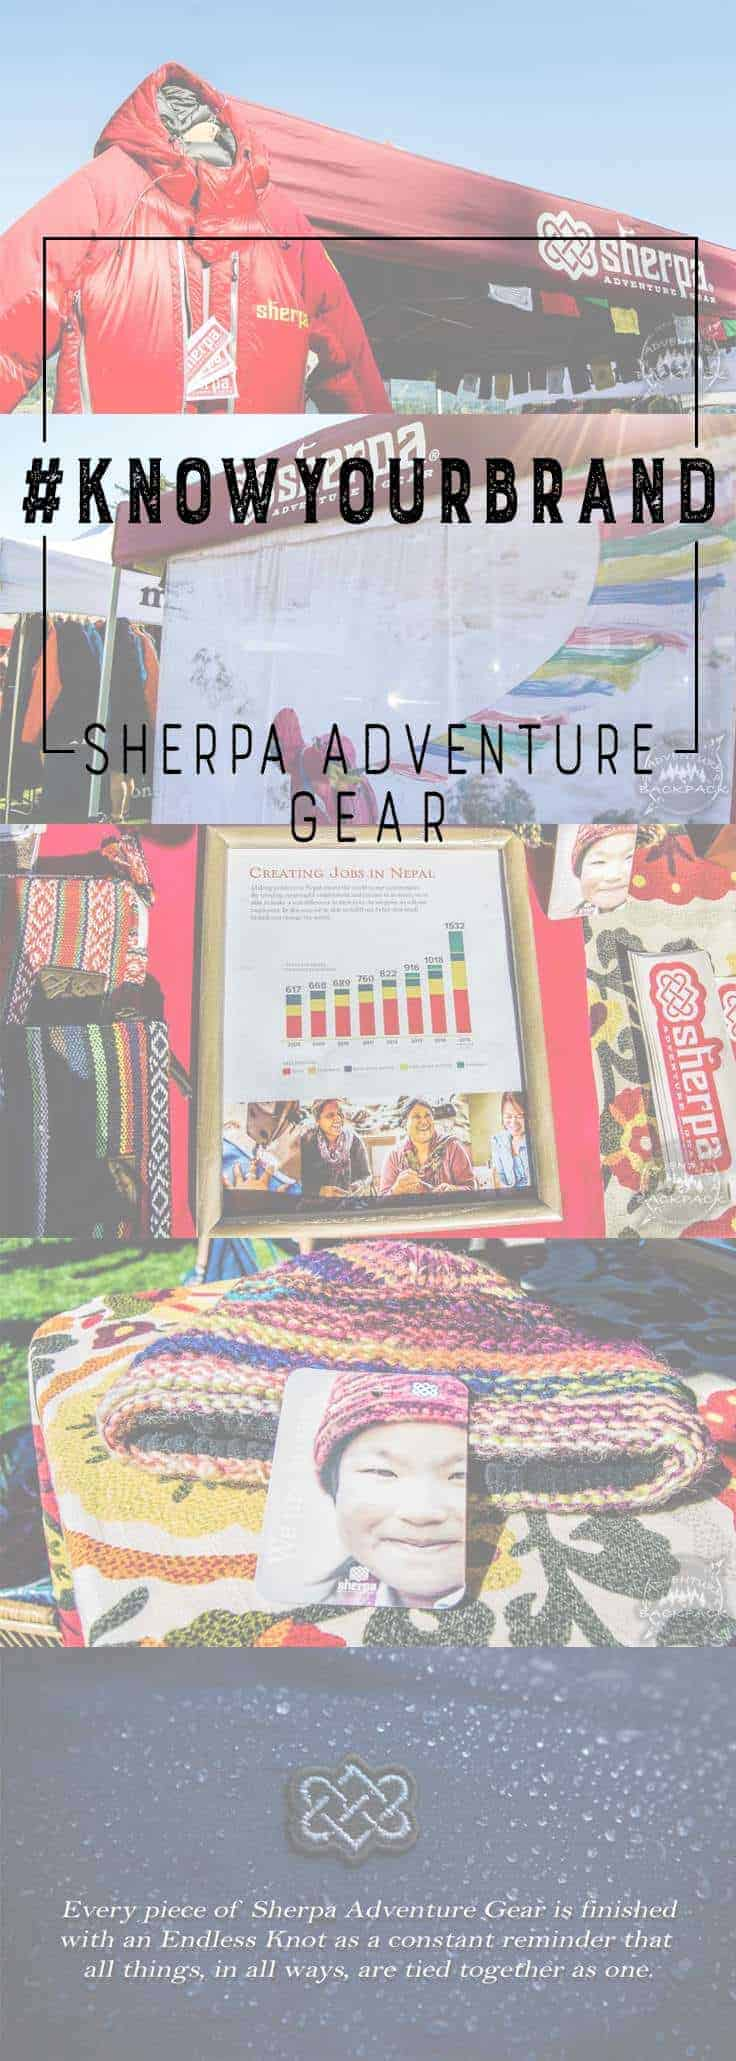 Sherpa adventure gear is more than just outerwear.  They actually help the sherpa culture by employing those involved in the culture but are not mountain guides at a fair wage and good working conditions.  outdoor gear | Jackets | Ski Jackets | Snowboard Jackets | Ski outfits | snowboard outfits